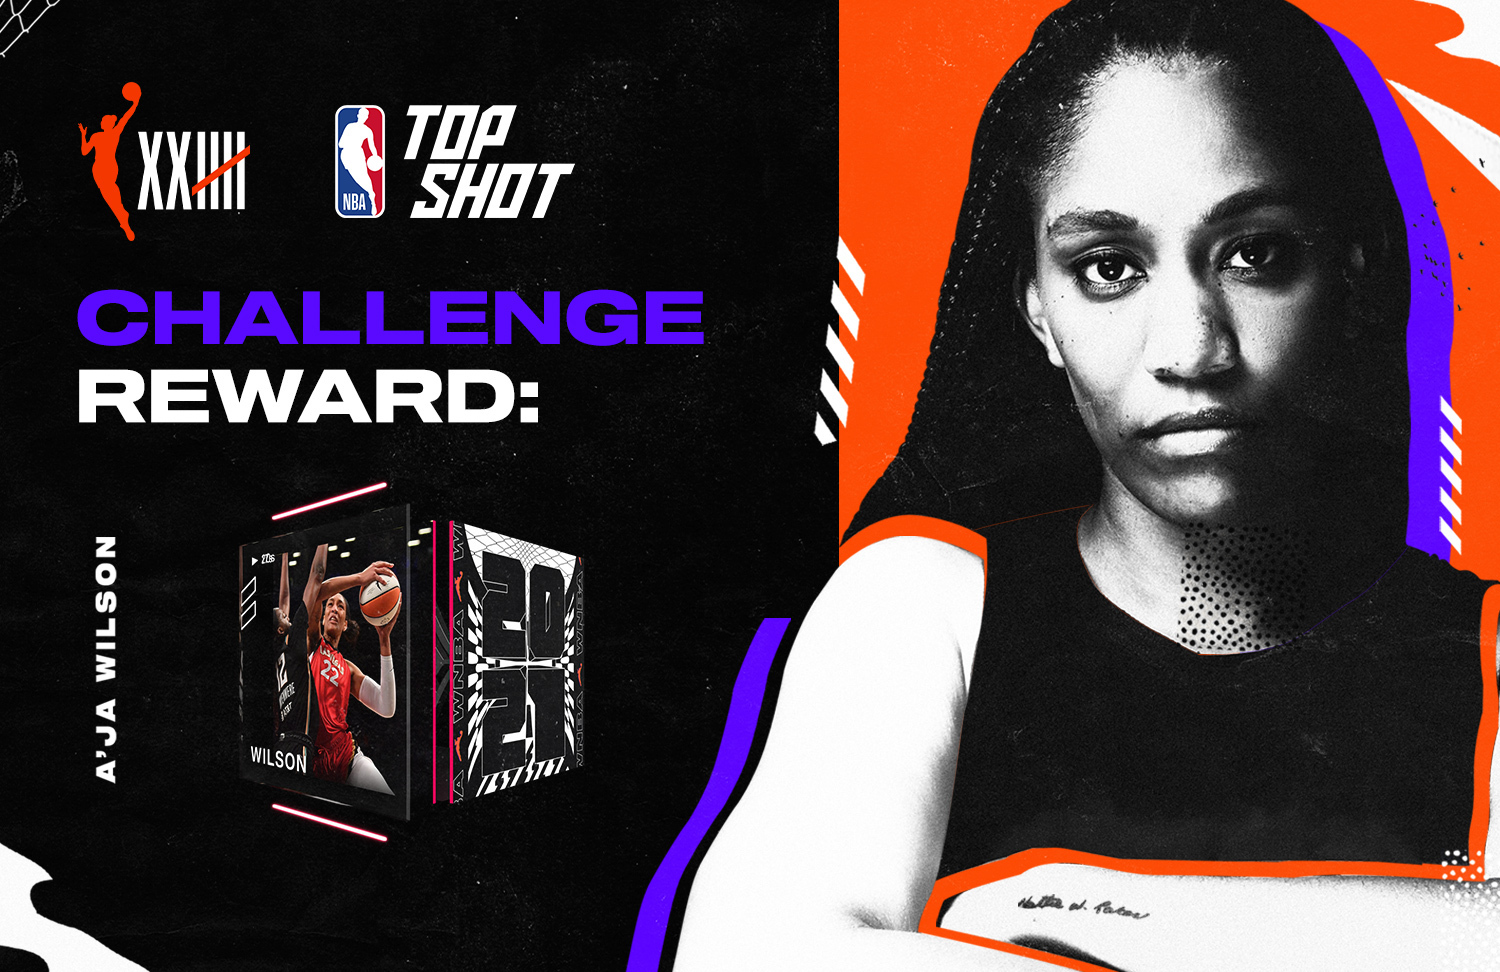 Collect any five WNBA Moments before Thursday, September 2 at 10am PDT to earn yourself a Fandom tier Moment from the reigning WNBA MVP.